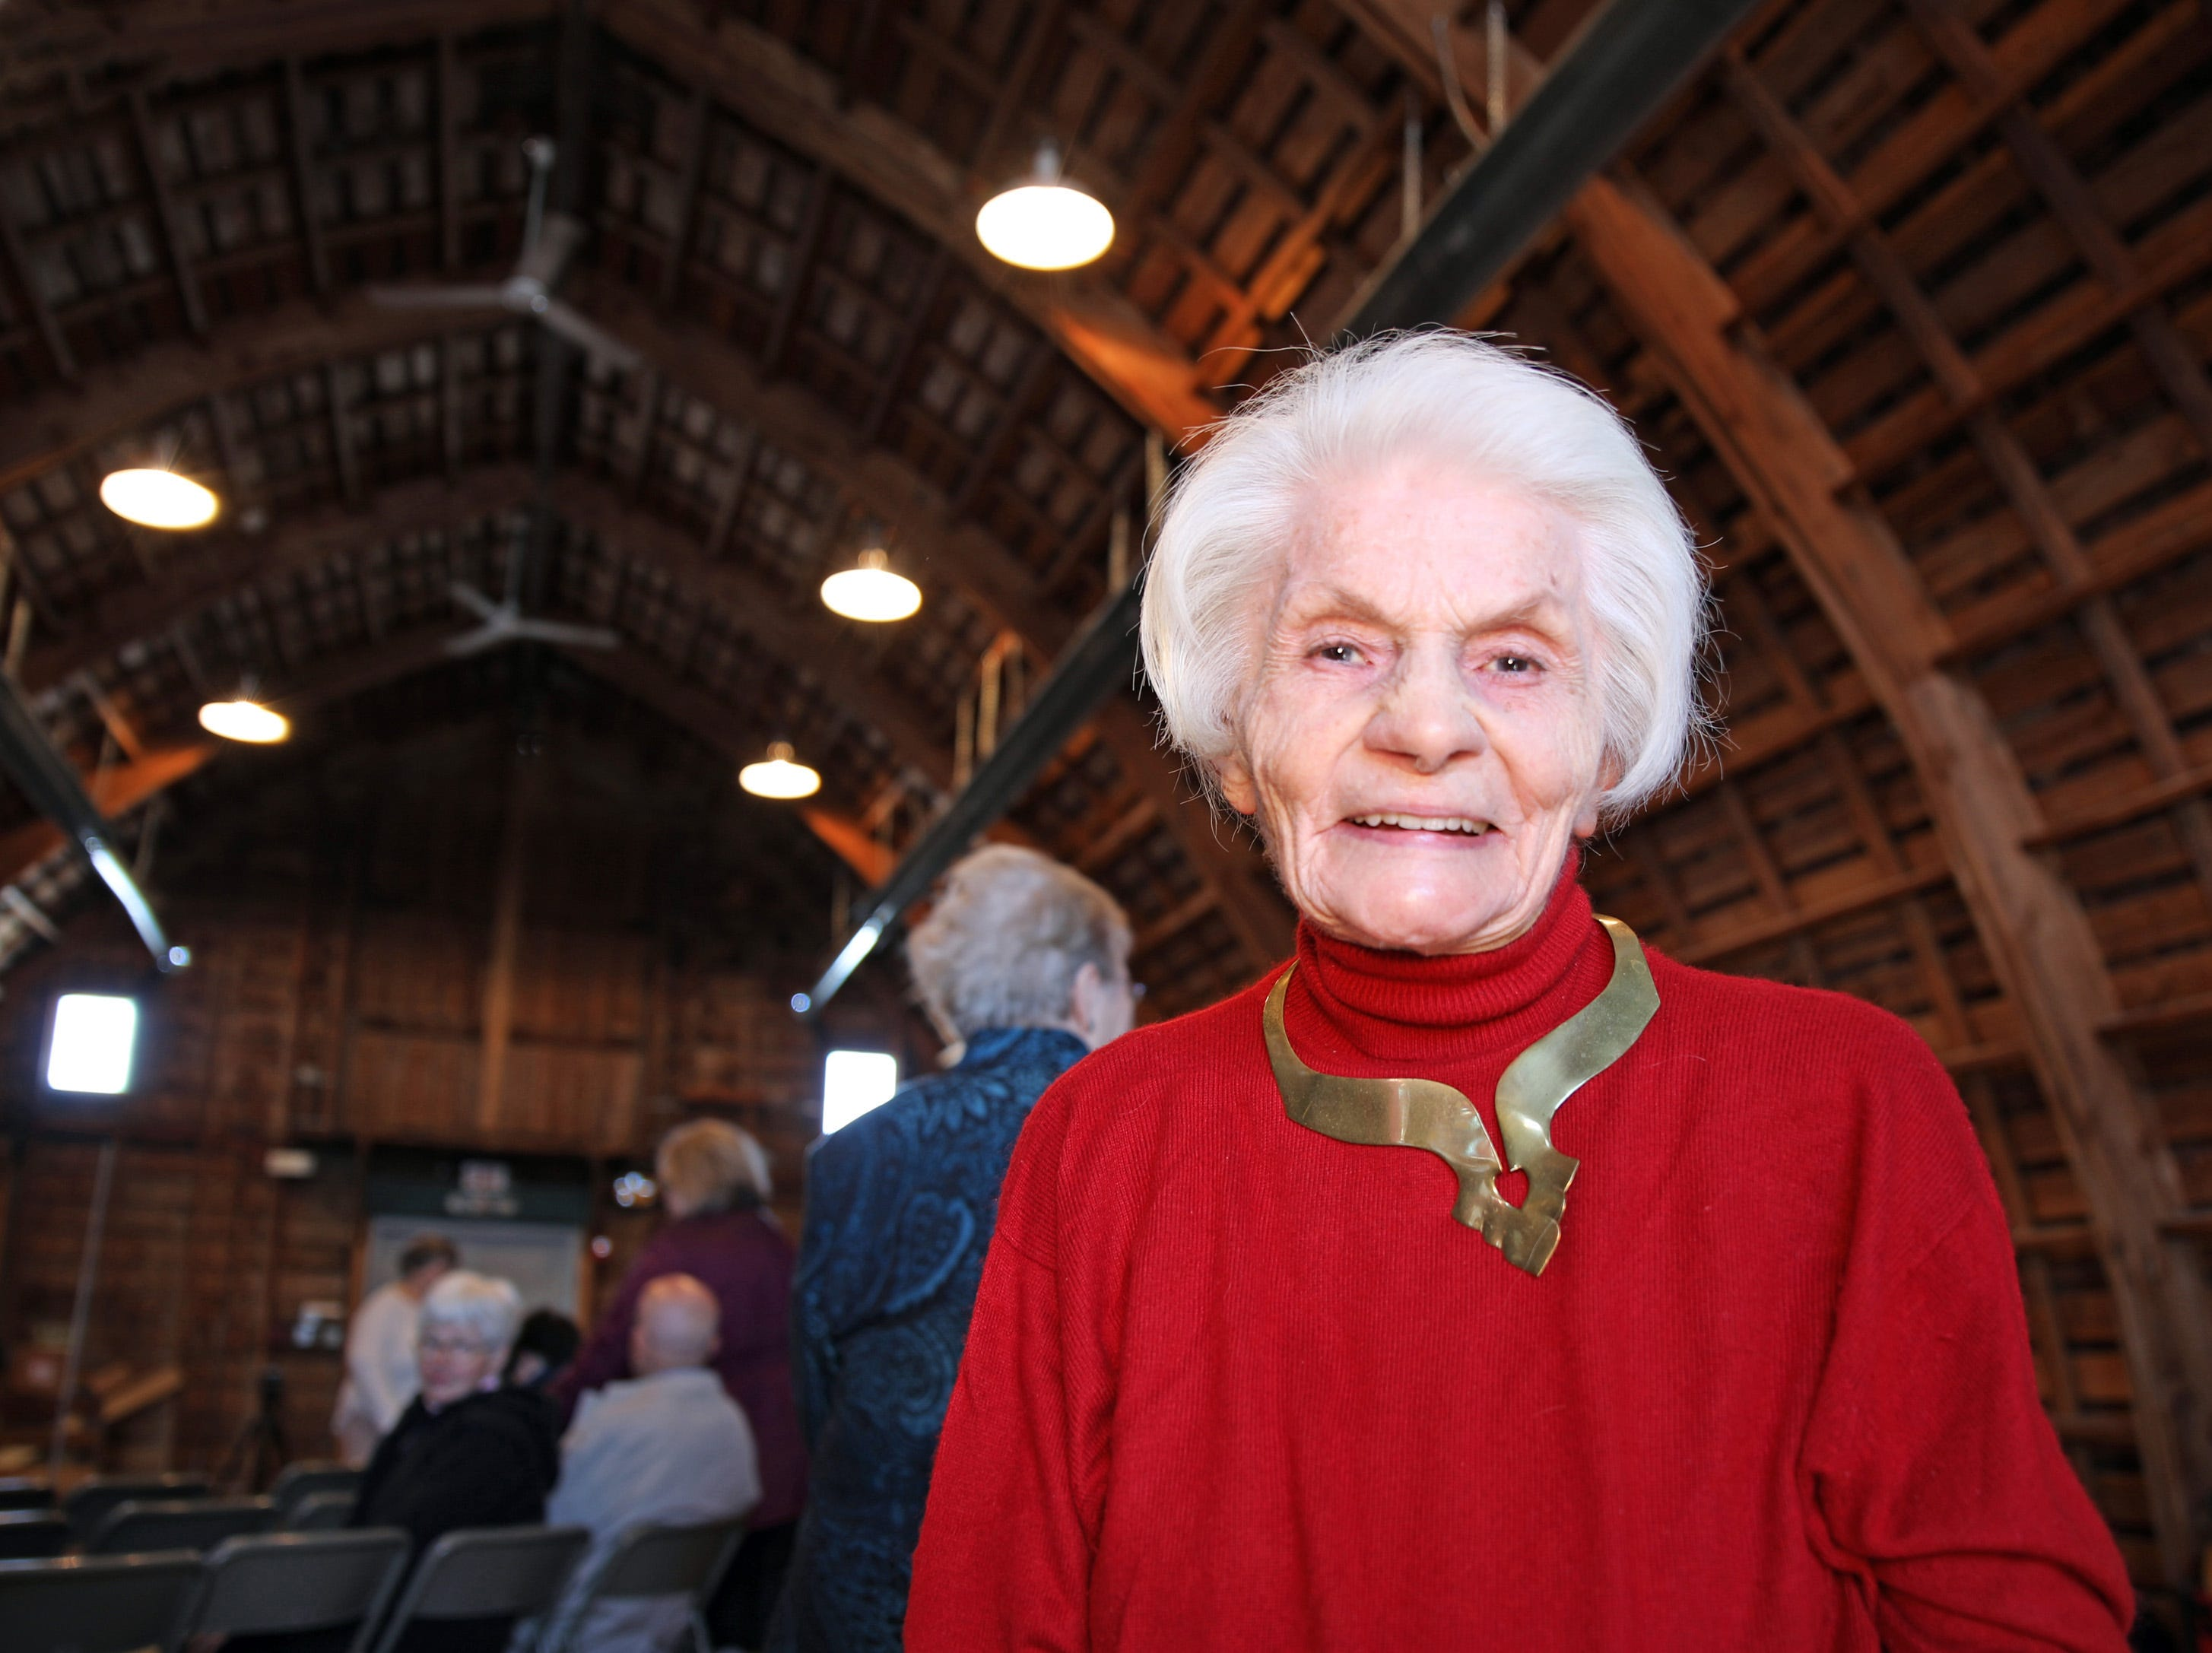 Former Johnston Mayor Mary Ann Roberts, 1982-1985, arrives to the opening of the 25-year old time capsule from 1994 as the city of Johnston celebrates its 50th anniversary at the Simpson House and Barn Museum at 6161 Northglenn Drive on Sunday, March 10, 2019, in Johnston. The city was incorporated in 1969 with 2,236 residents and 50 years later, over 21,000 residents call Johnston home.